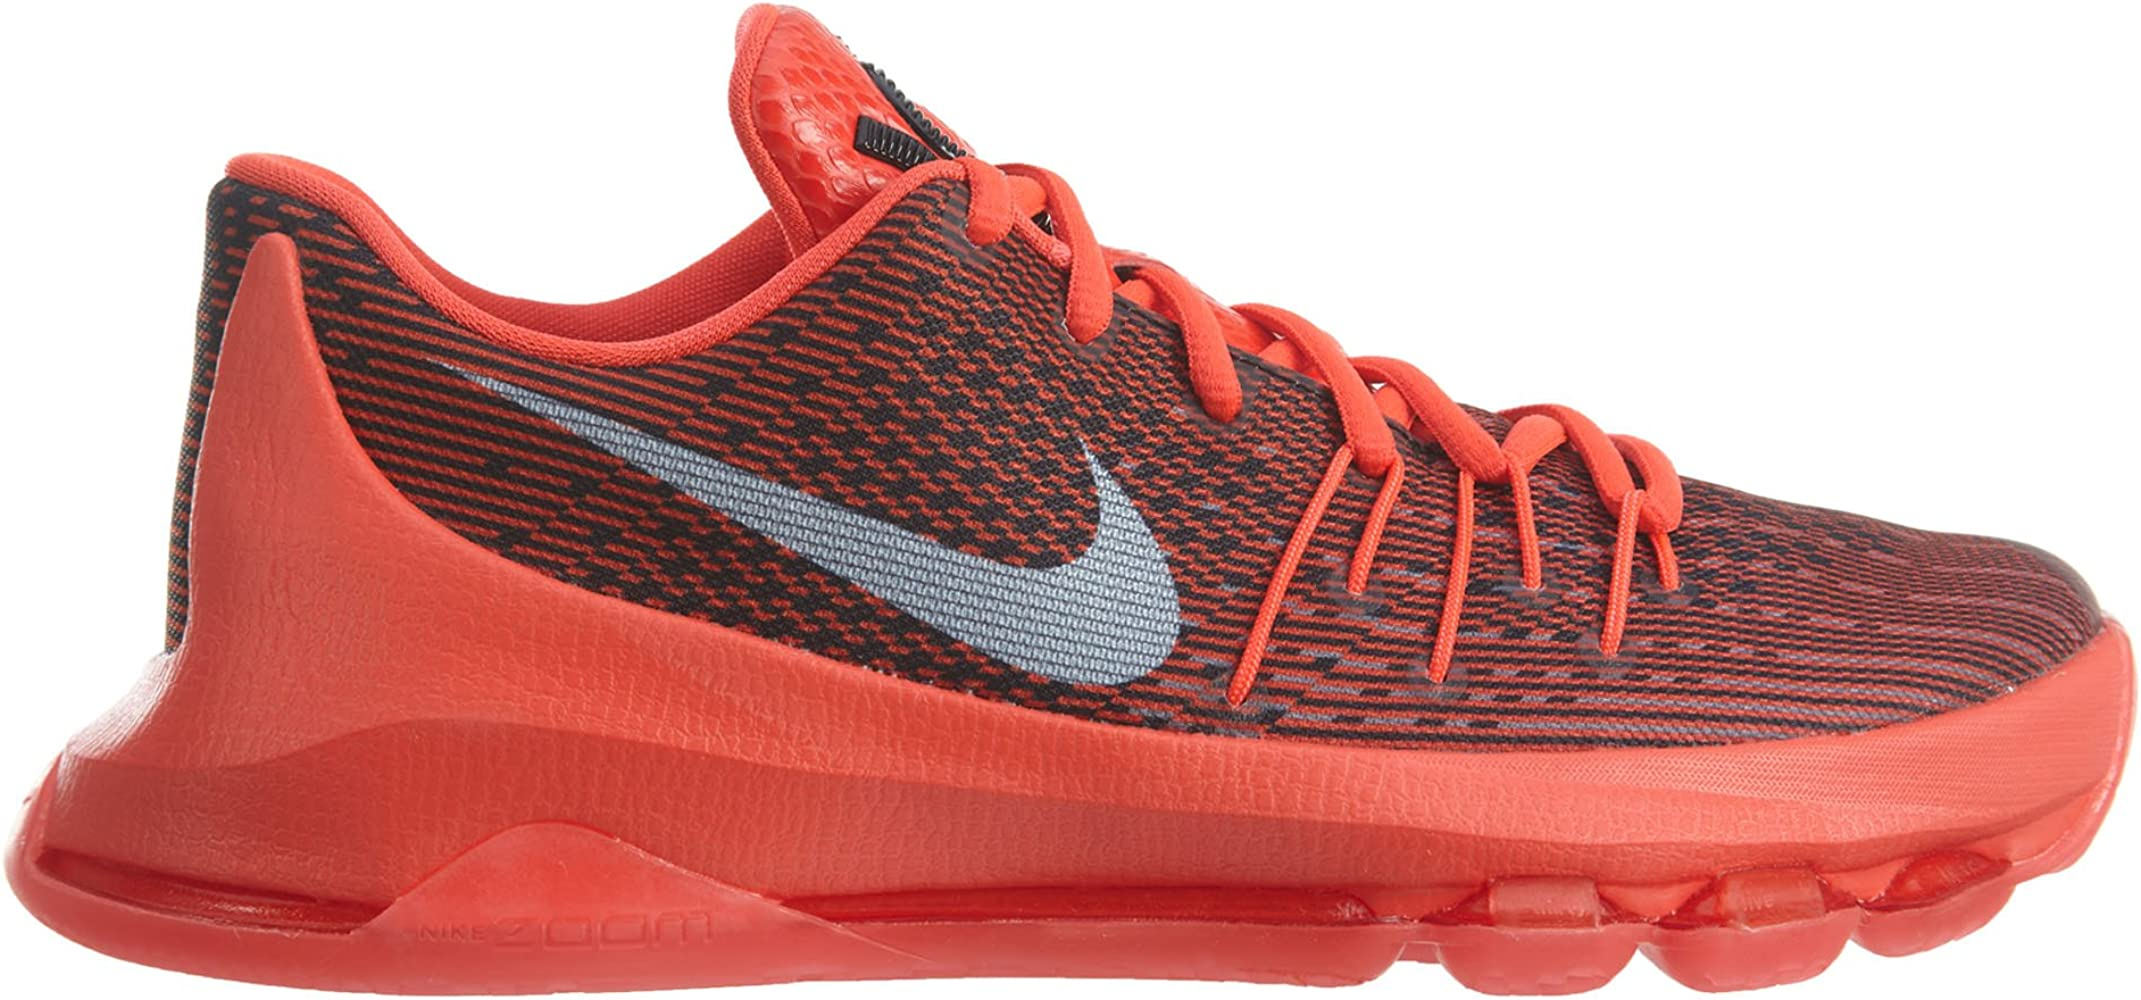 detailed pictures pretty nice best loved Amazon.com: Nike Men's KD 8 EXT Basketball Shoe (10.5, Bright ...